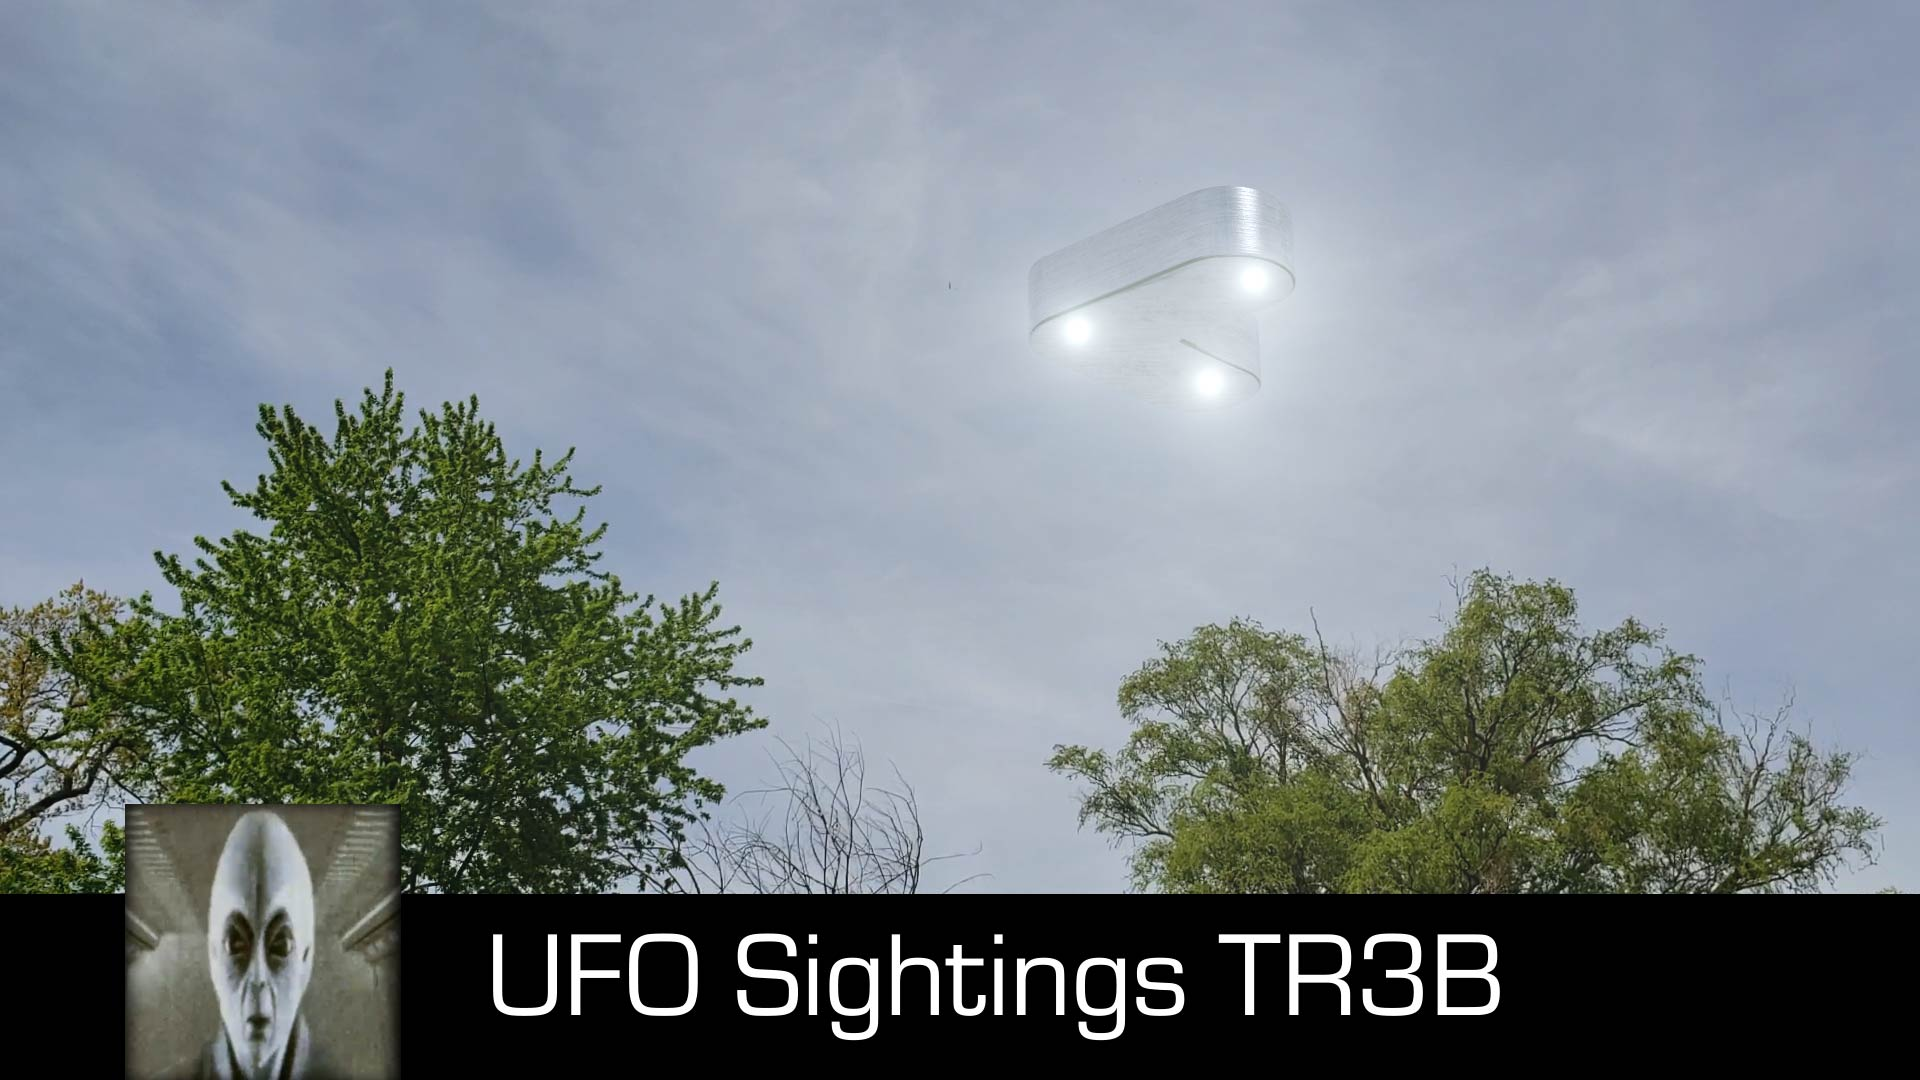 UFO Sightings TR3B Florida May 20th 2018